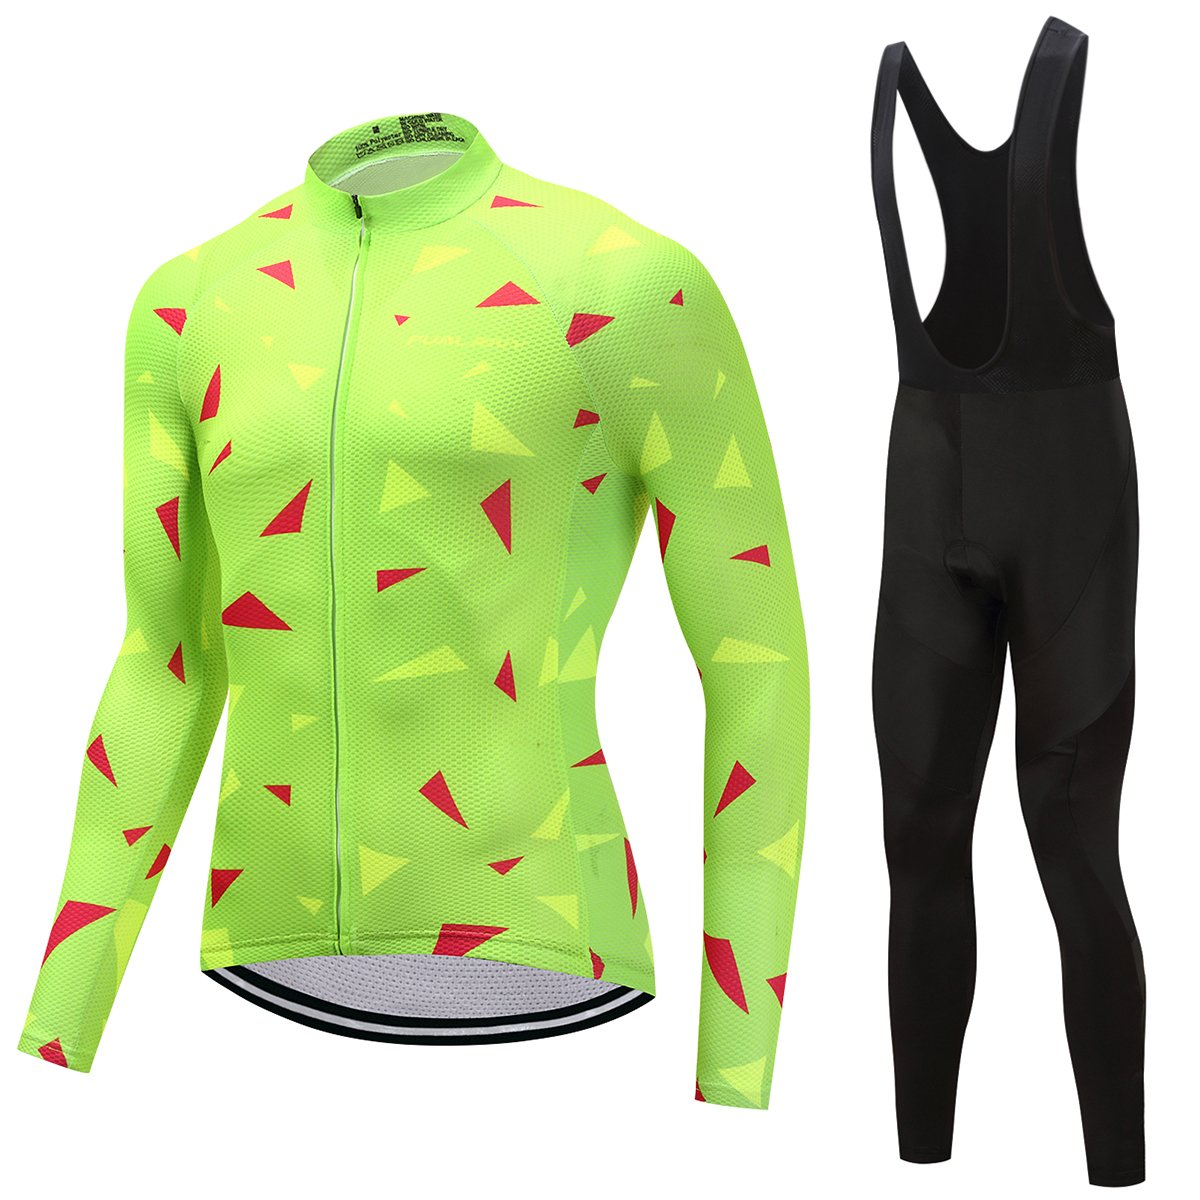 f1cfa47a5 TrendyCycling Men s Jersey and black bib   4XL   Lime Ascent Lime - Men s  Long Sleeve